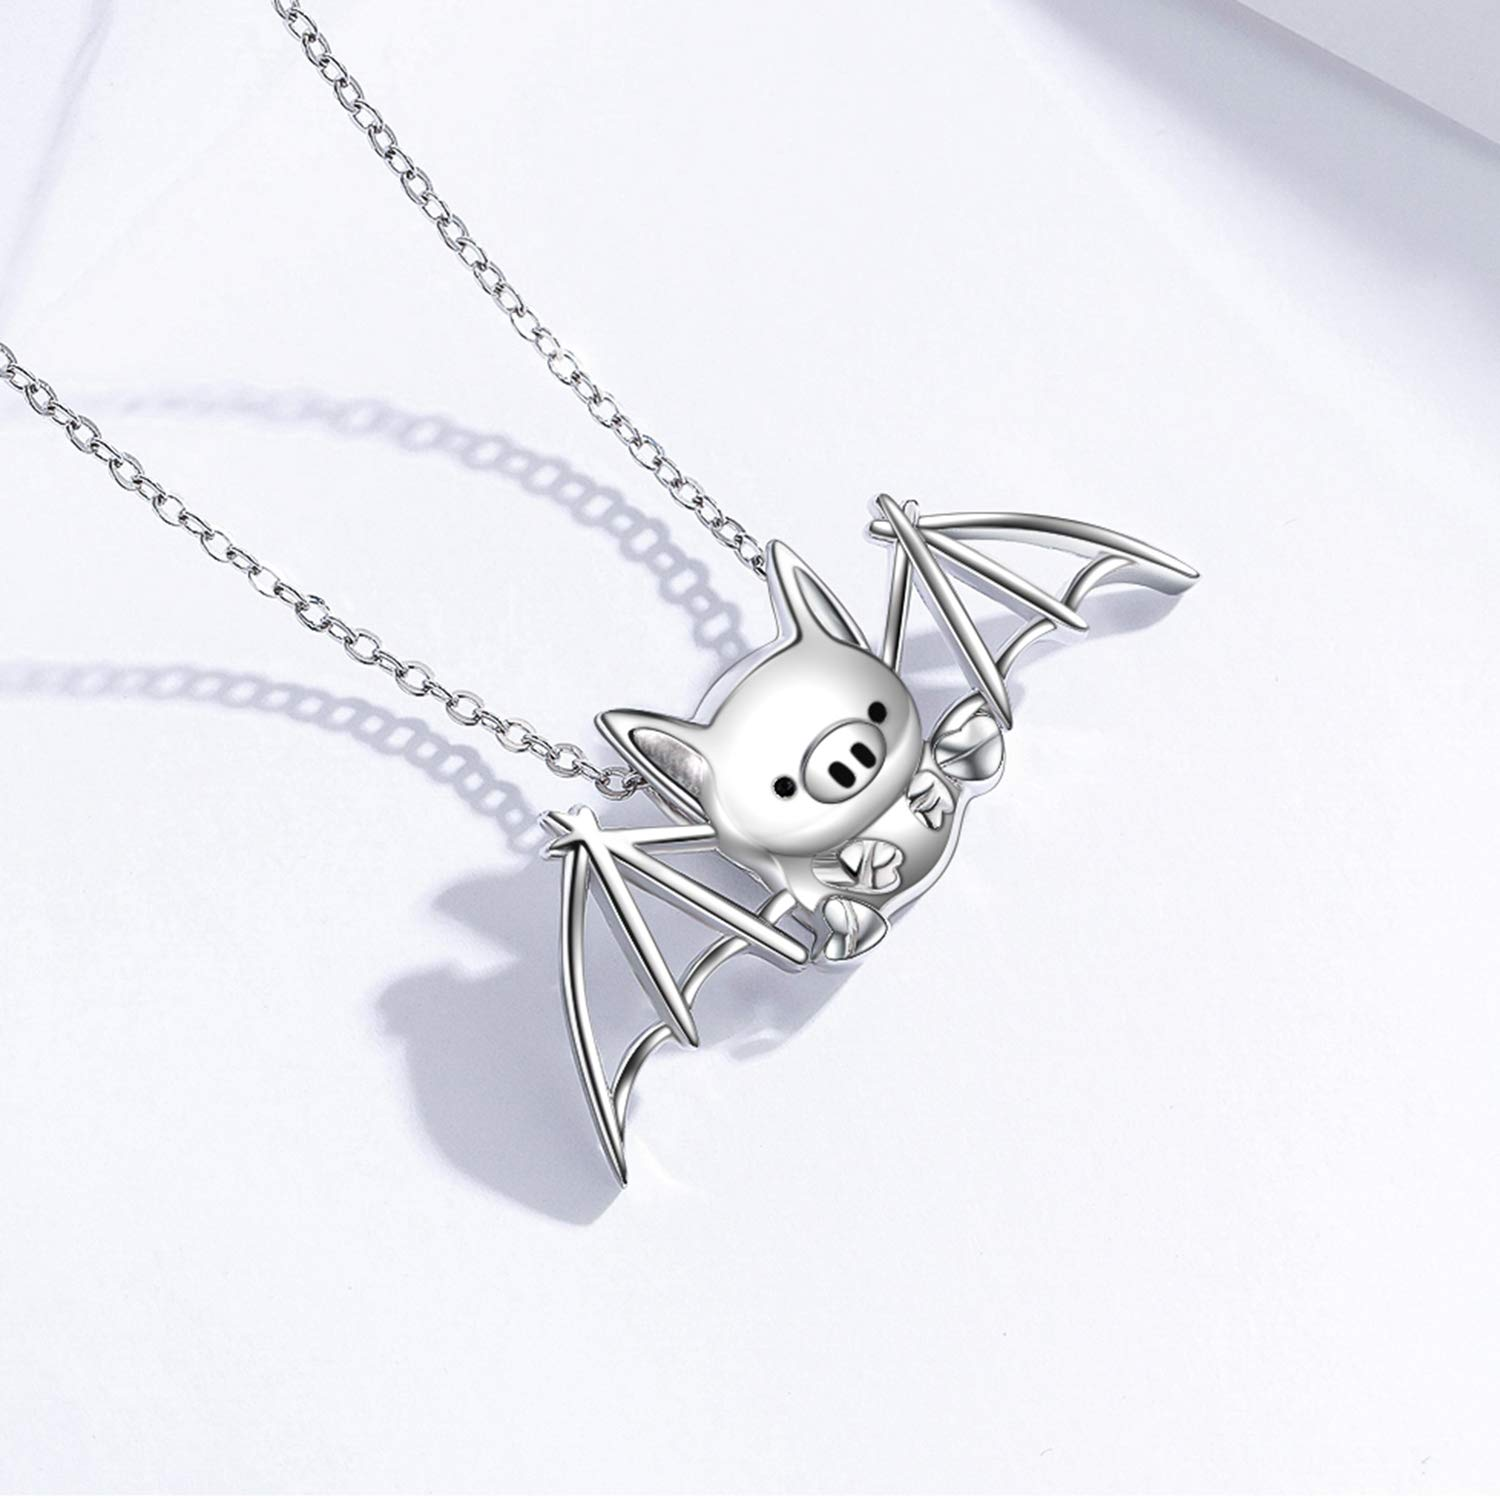 MEDWISE Cute Pig Pendant Necklace 925 Sterling Silver Funny Flying Bat Wings Pig Pendant Necklace Jewelry Birthday Gifts for Girls Women